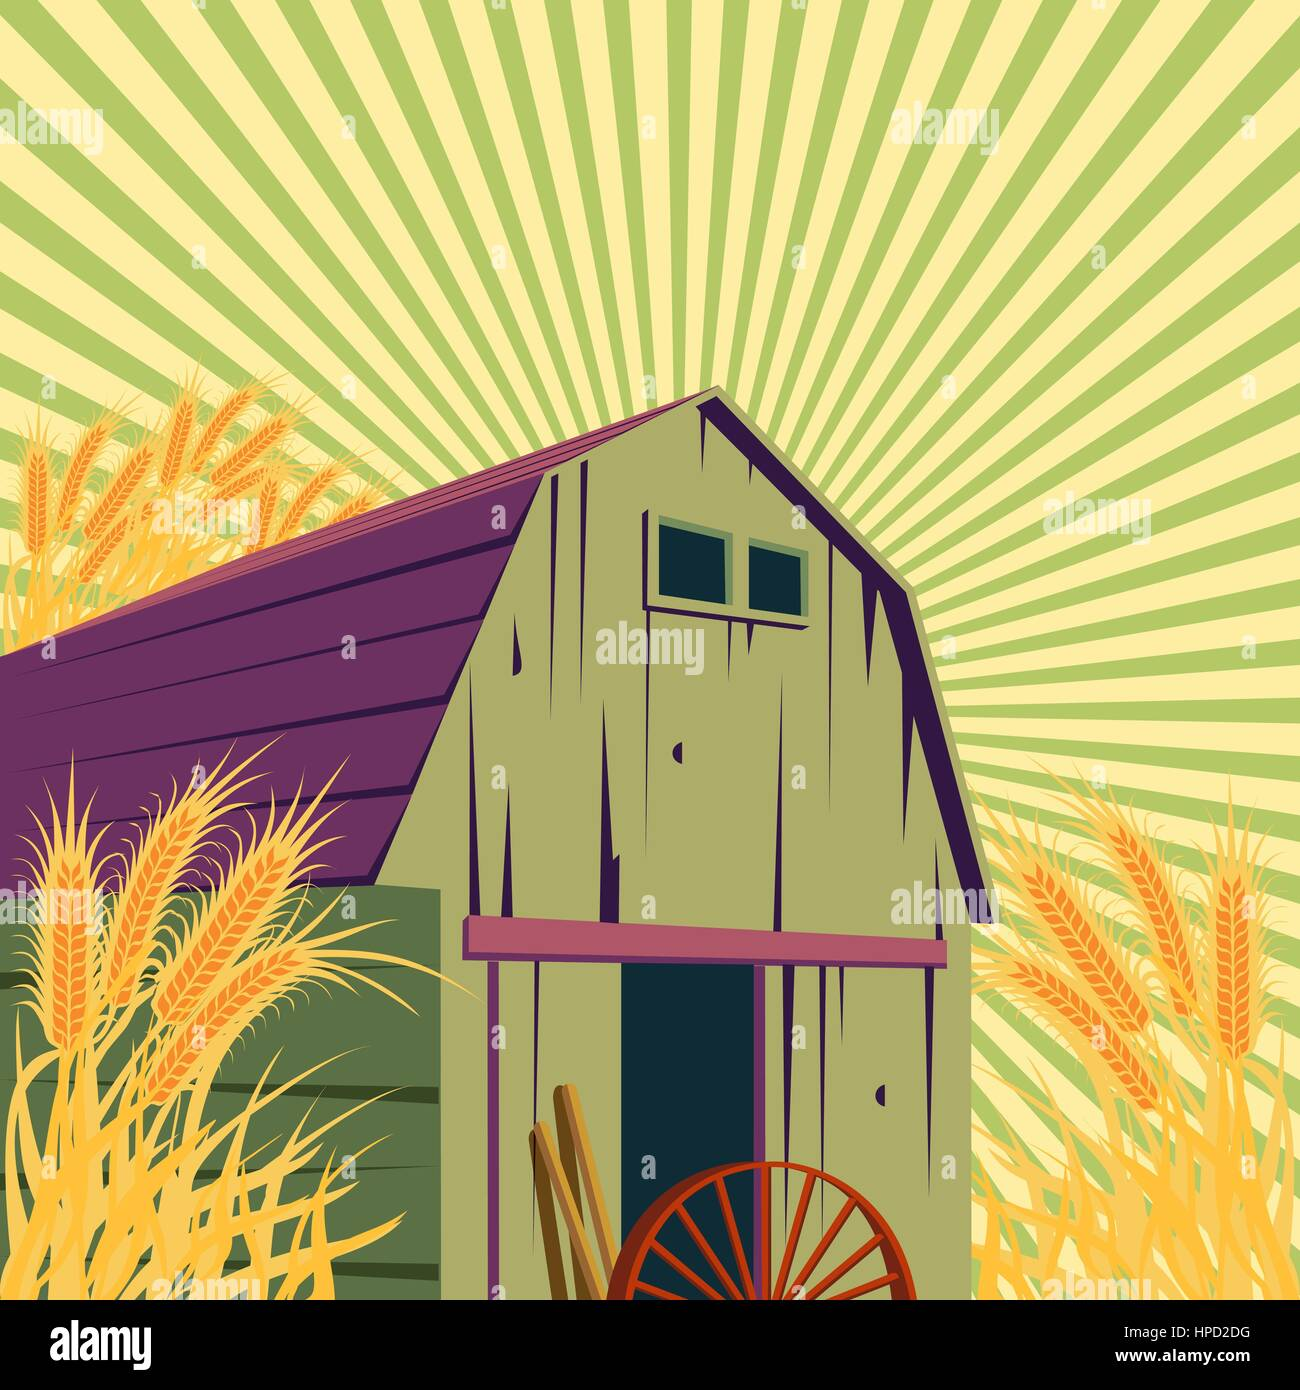 Farm rural scene with barns and golden wheat field. Organic food concept for any design. - Stock Vector